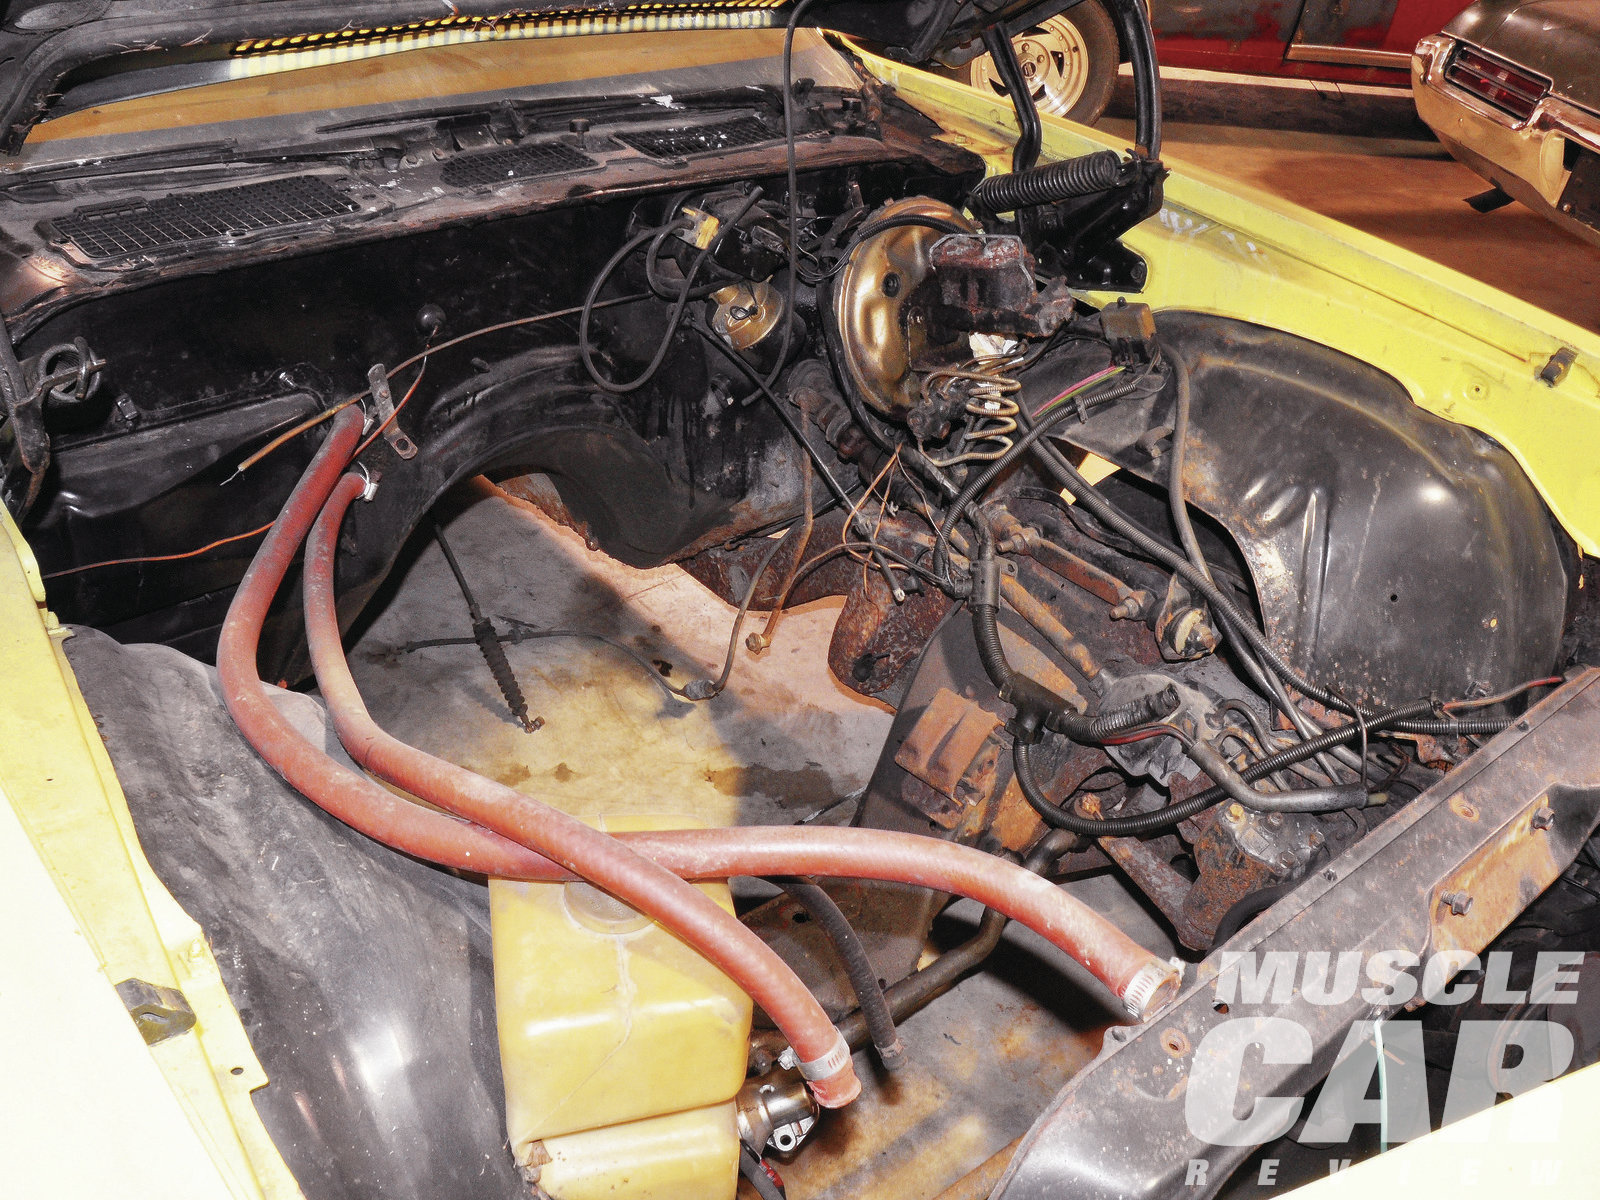 In 1974, Nickey Chevrolet would fill the engine compartment of a Nova or Chevelle with any engine it could get its hands on from Chevrolet. The customer was offered the 350/370-horse LT1, the 454/450-horse LS6, or the radical 427/430-horse L88. This car was converted to run the L88.